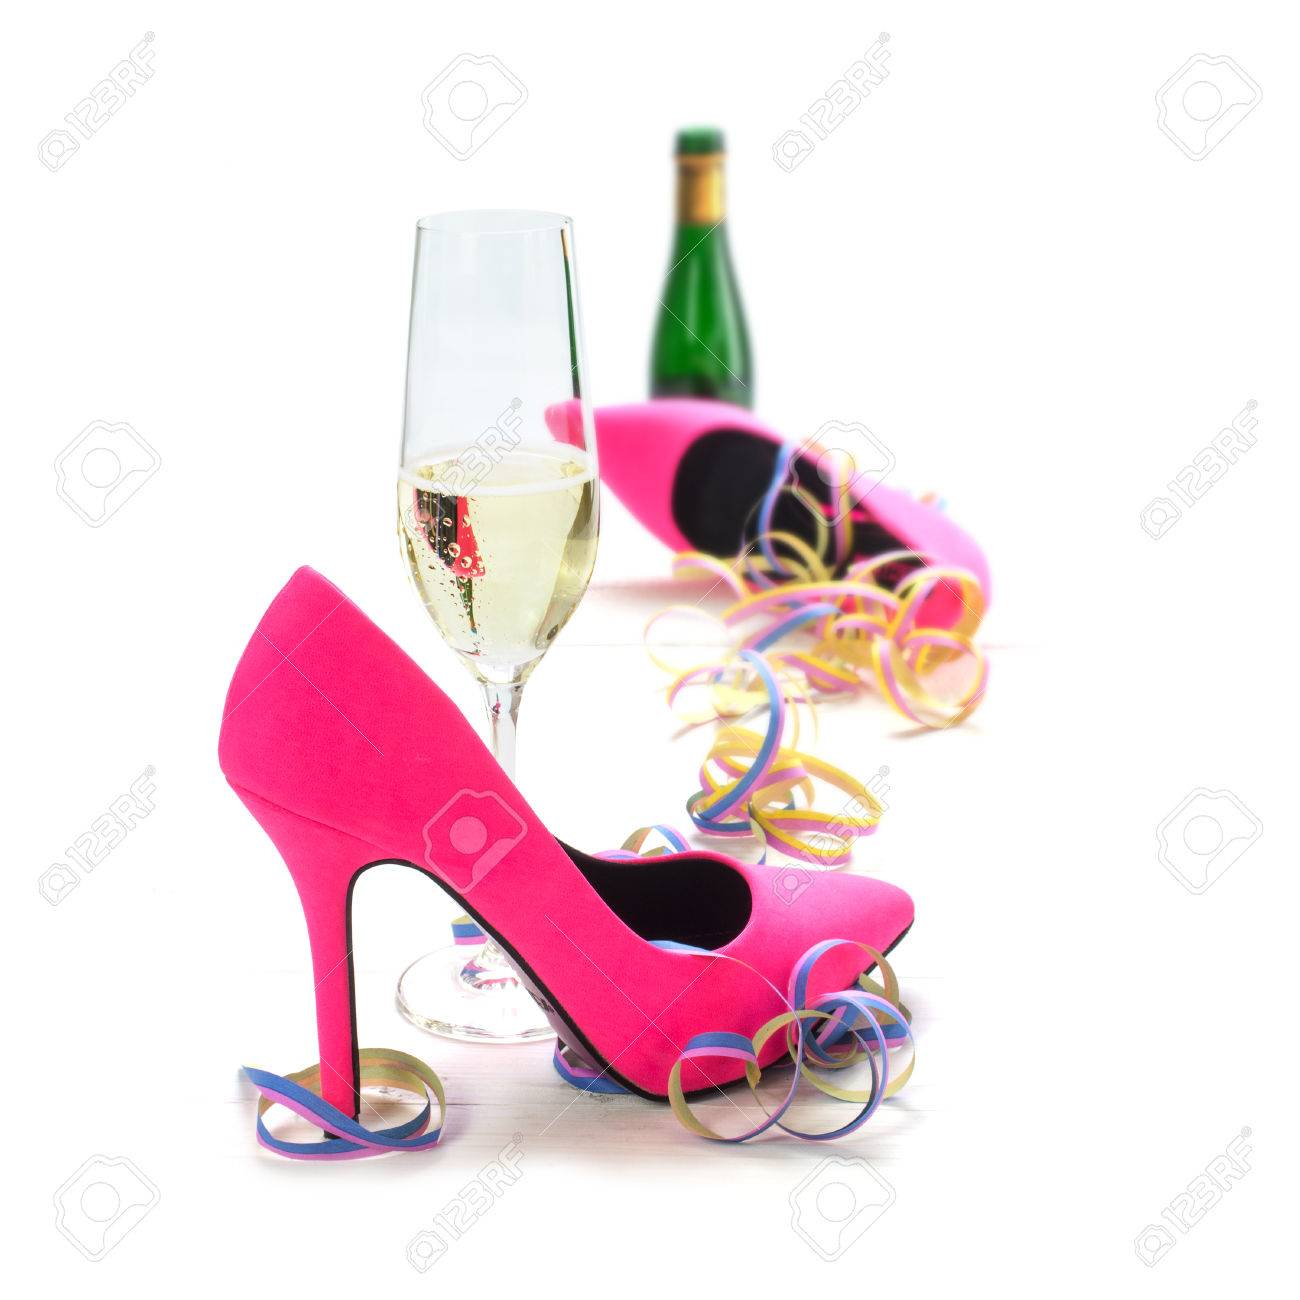 41cb2575c0 Stock Photo - women's day party, ladies pink high heels shoes, streamers,  champagne glass and bottle, isolated on a white background, selected focus,  ...